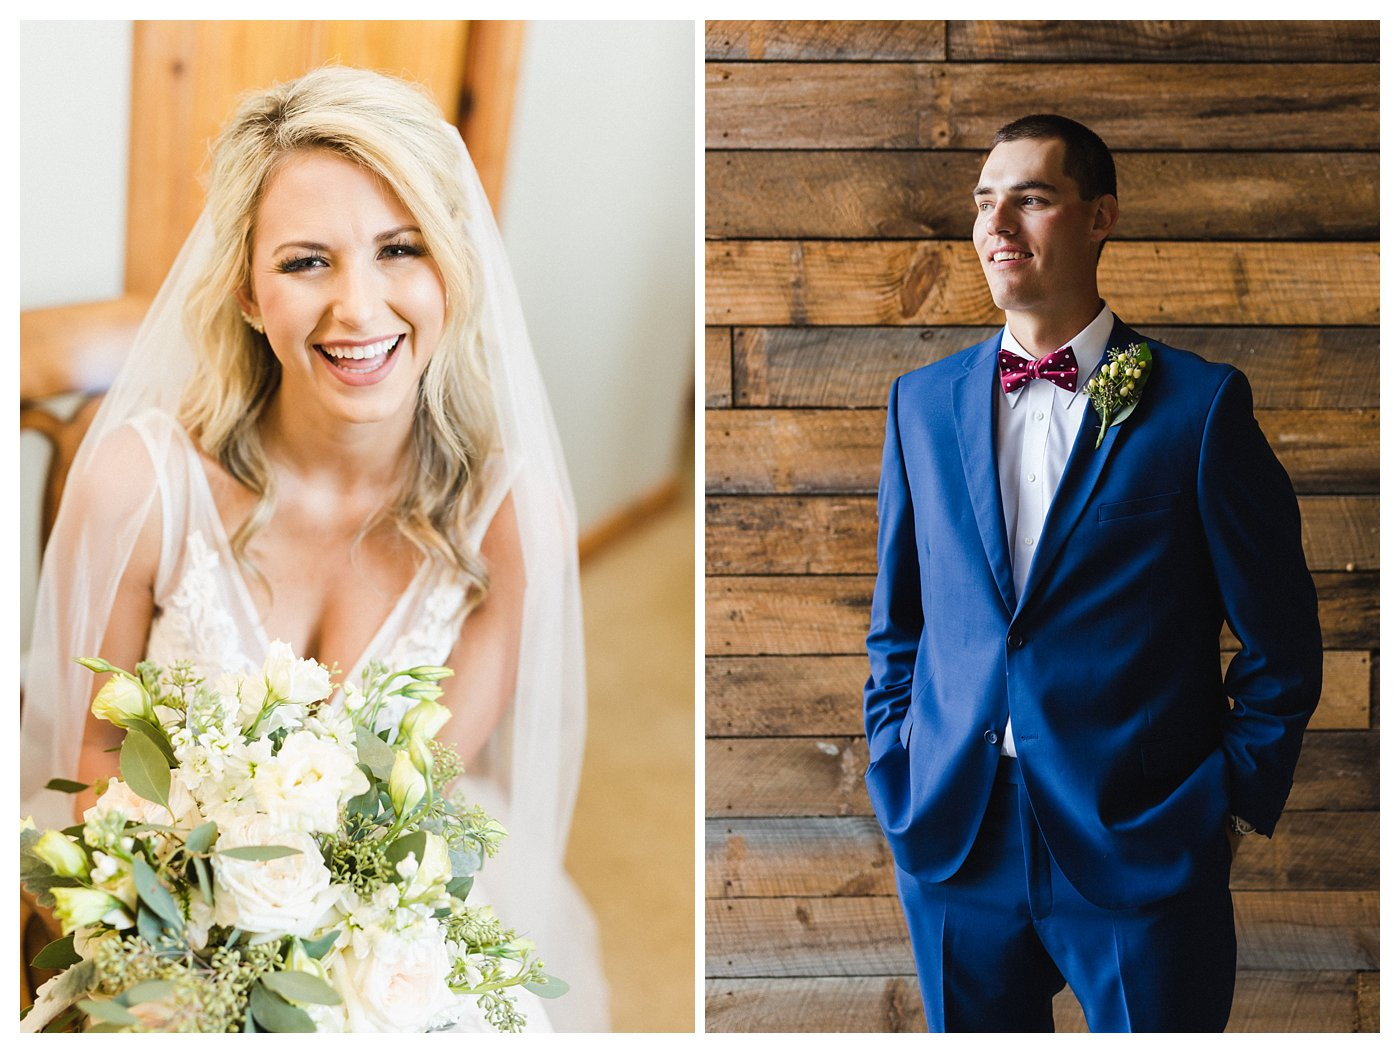 Raleigh Wedding Photographer Amanda and Grady at Double C Ranch